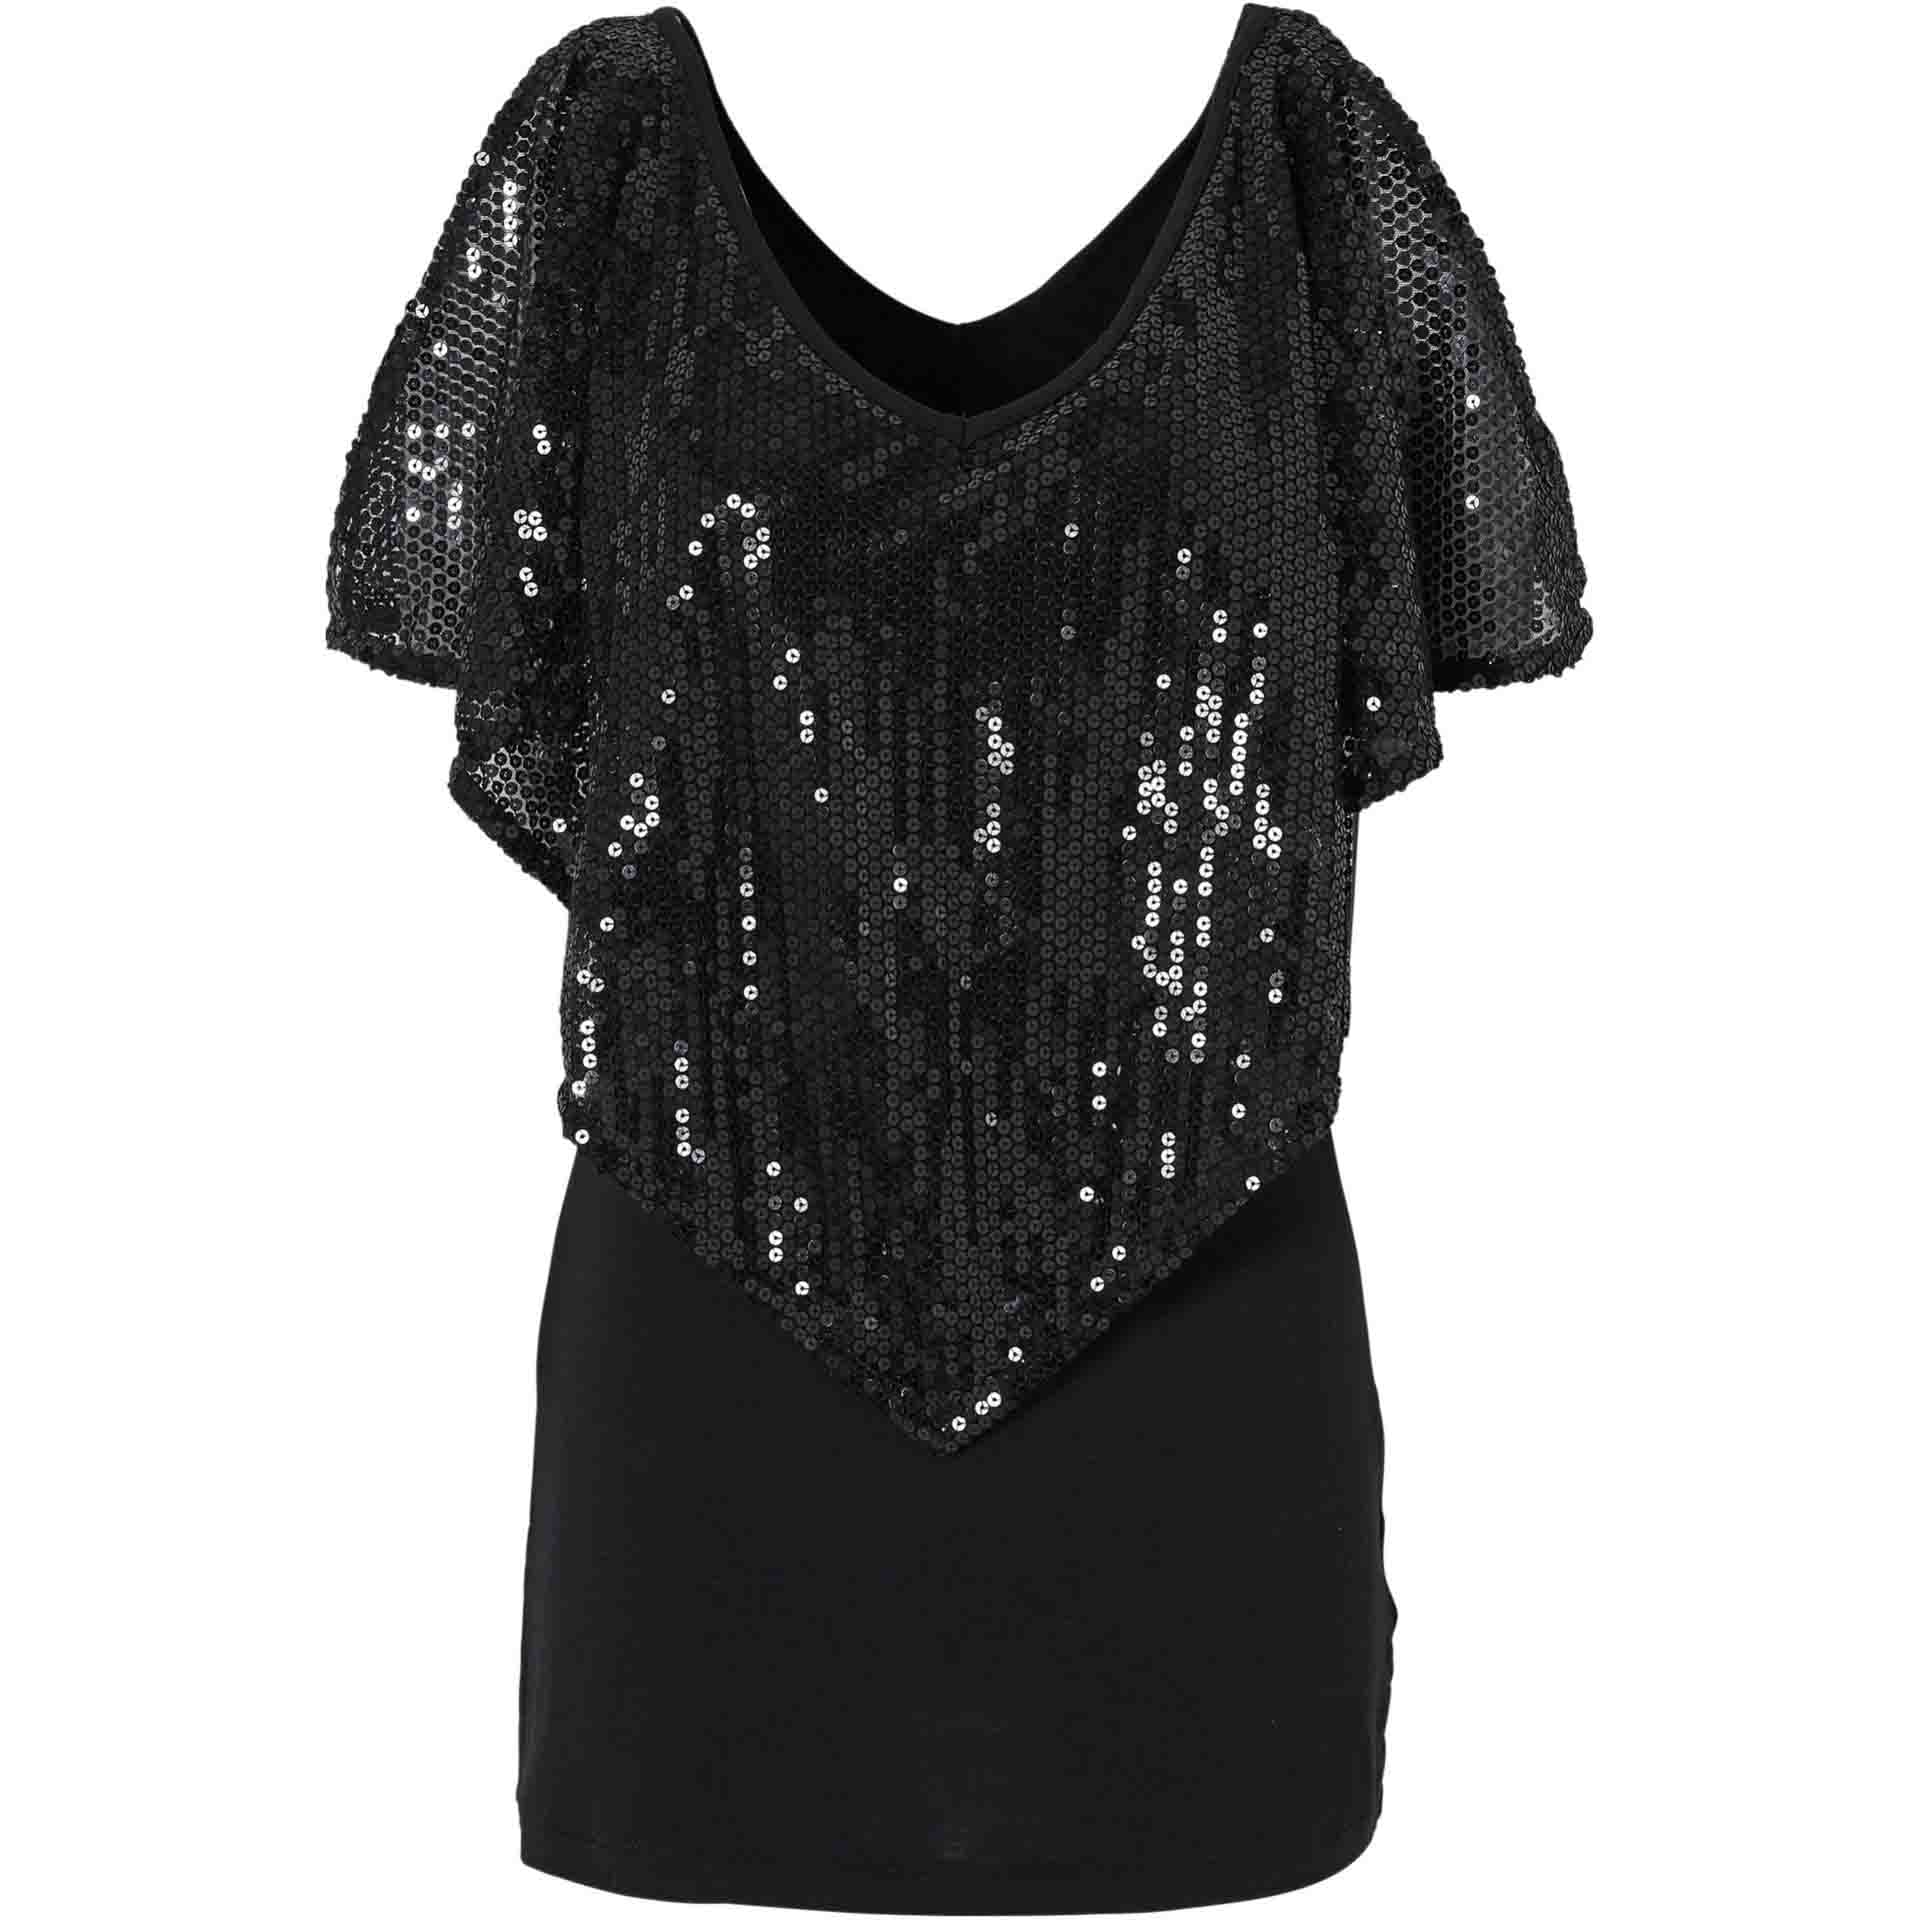 Spring European And American Fashion Women s Wear Pearl Segments Sleeve T shirt Ladies Bling Sequined